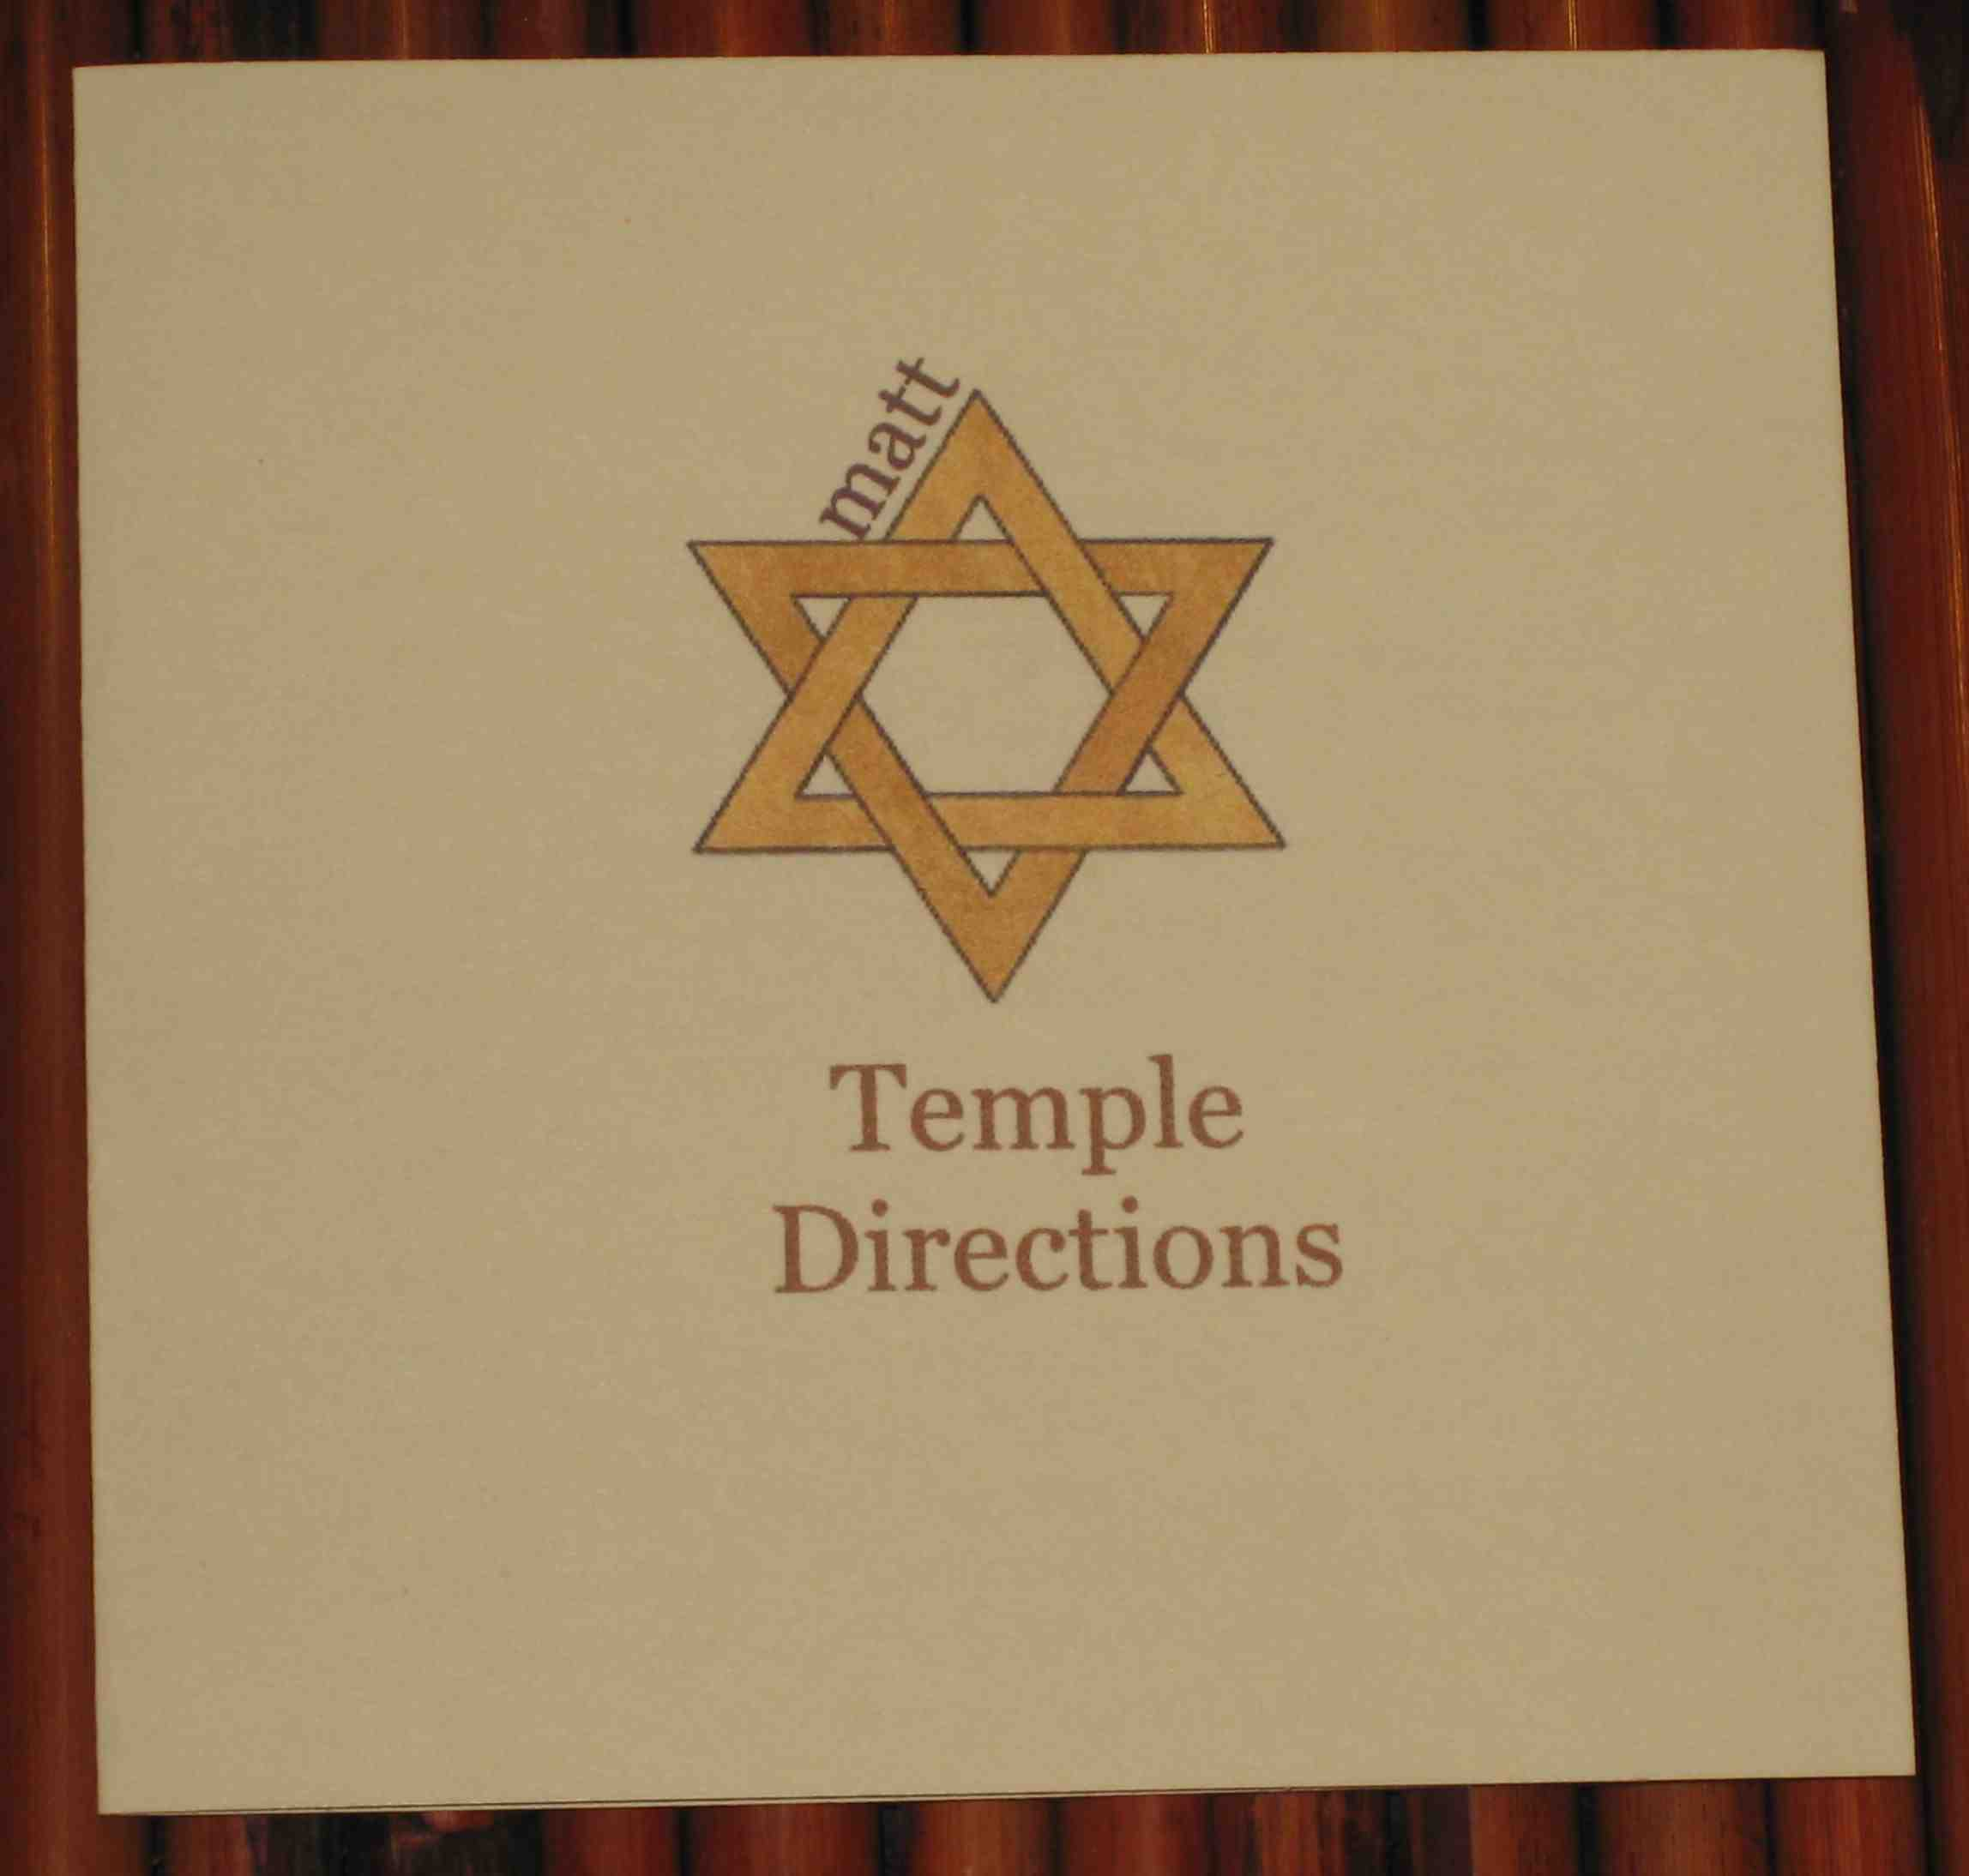 Temple Directions